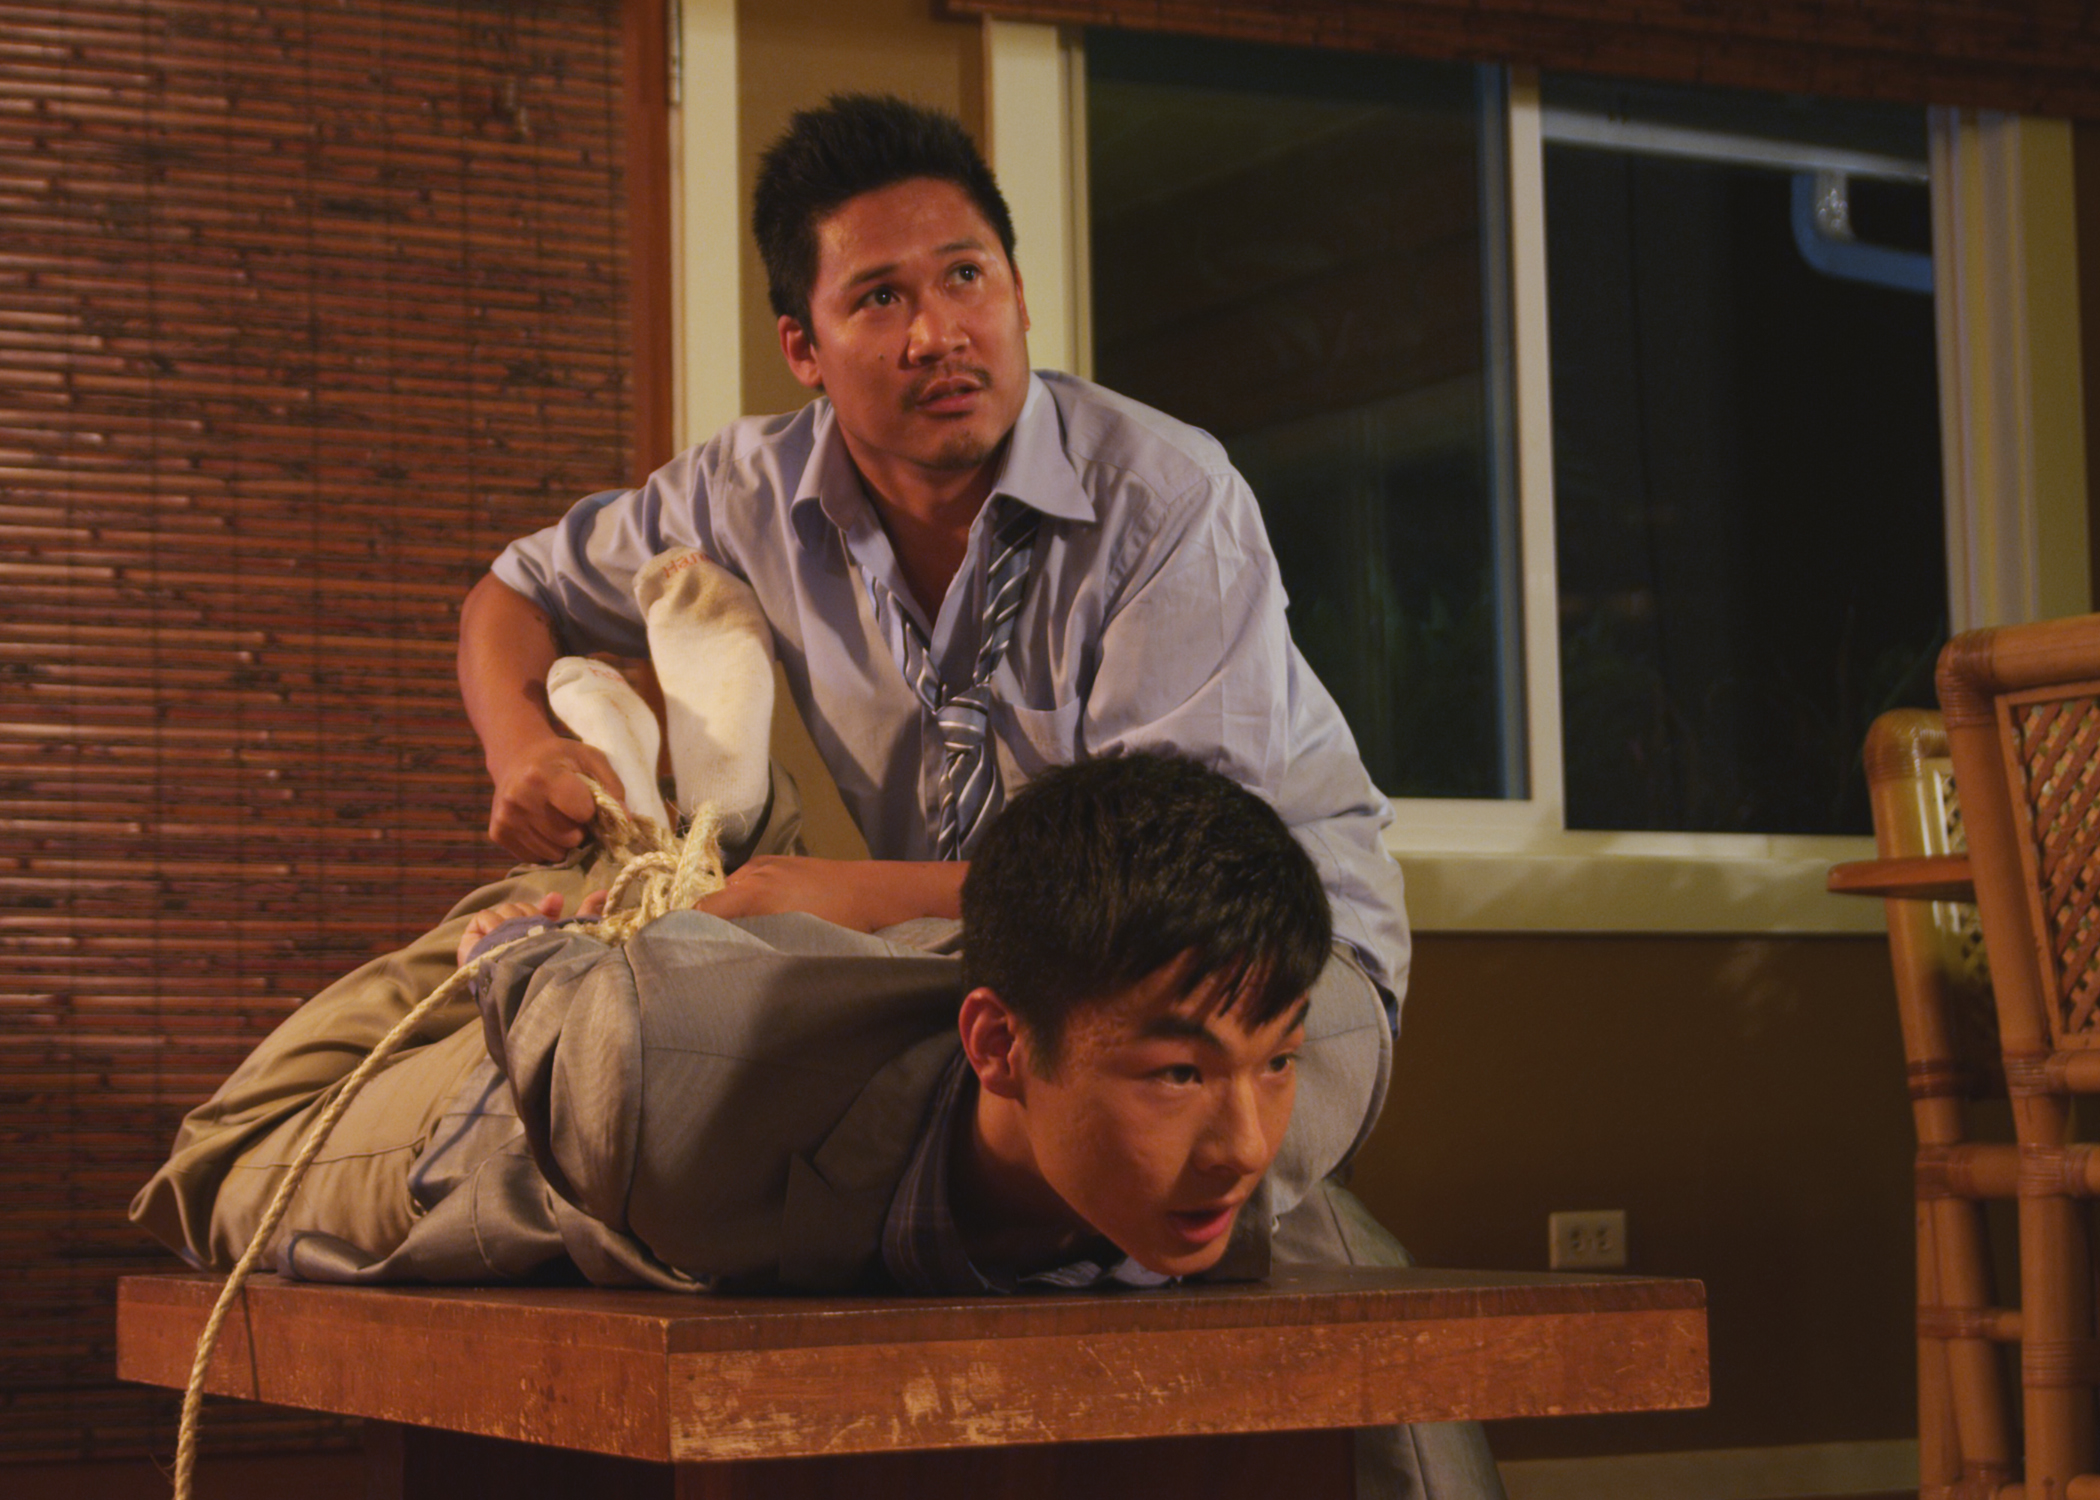 Dante Basco, an Asian American man, looks up while tying up Kevin Wu aka KevJumba, another Asian American man, by his ankles and hands with rope. He is lying on a coffee table.